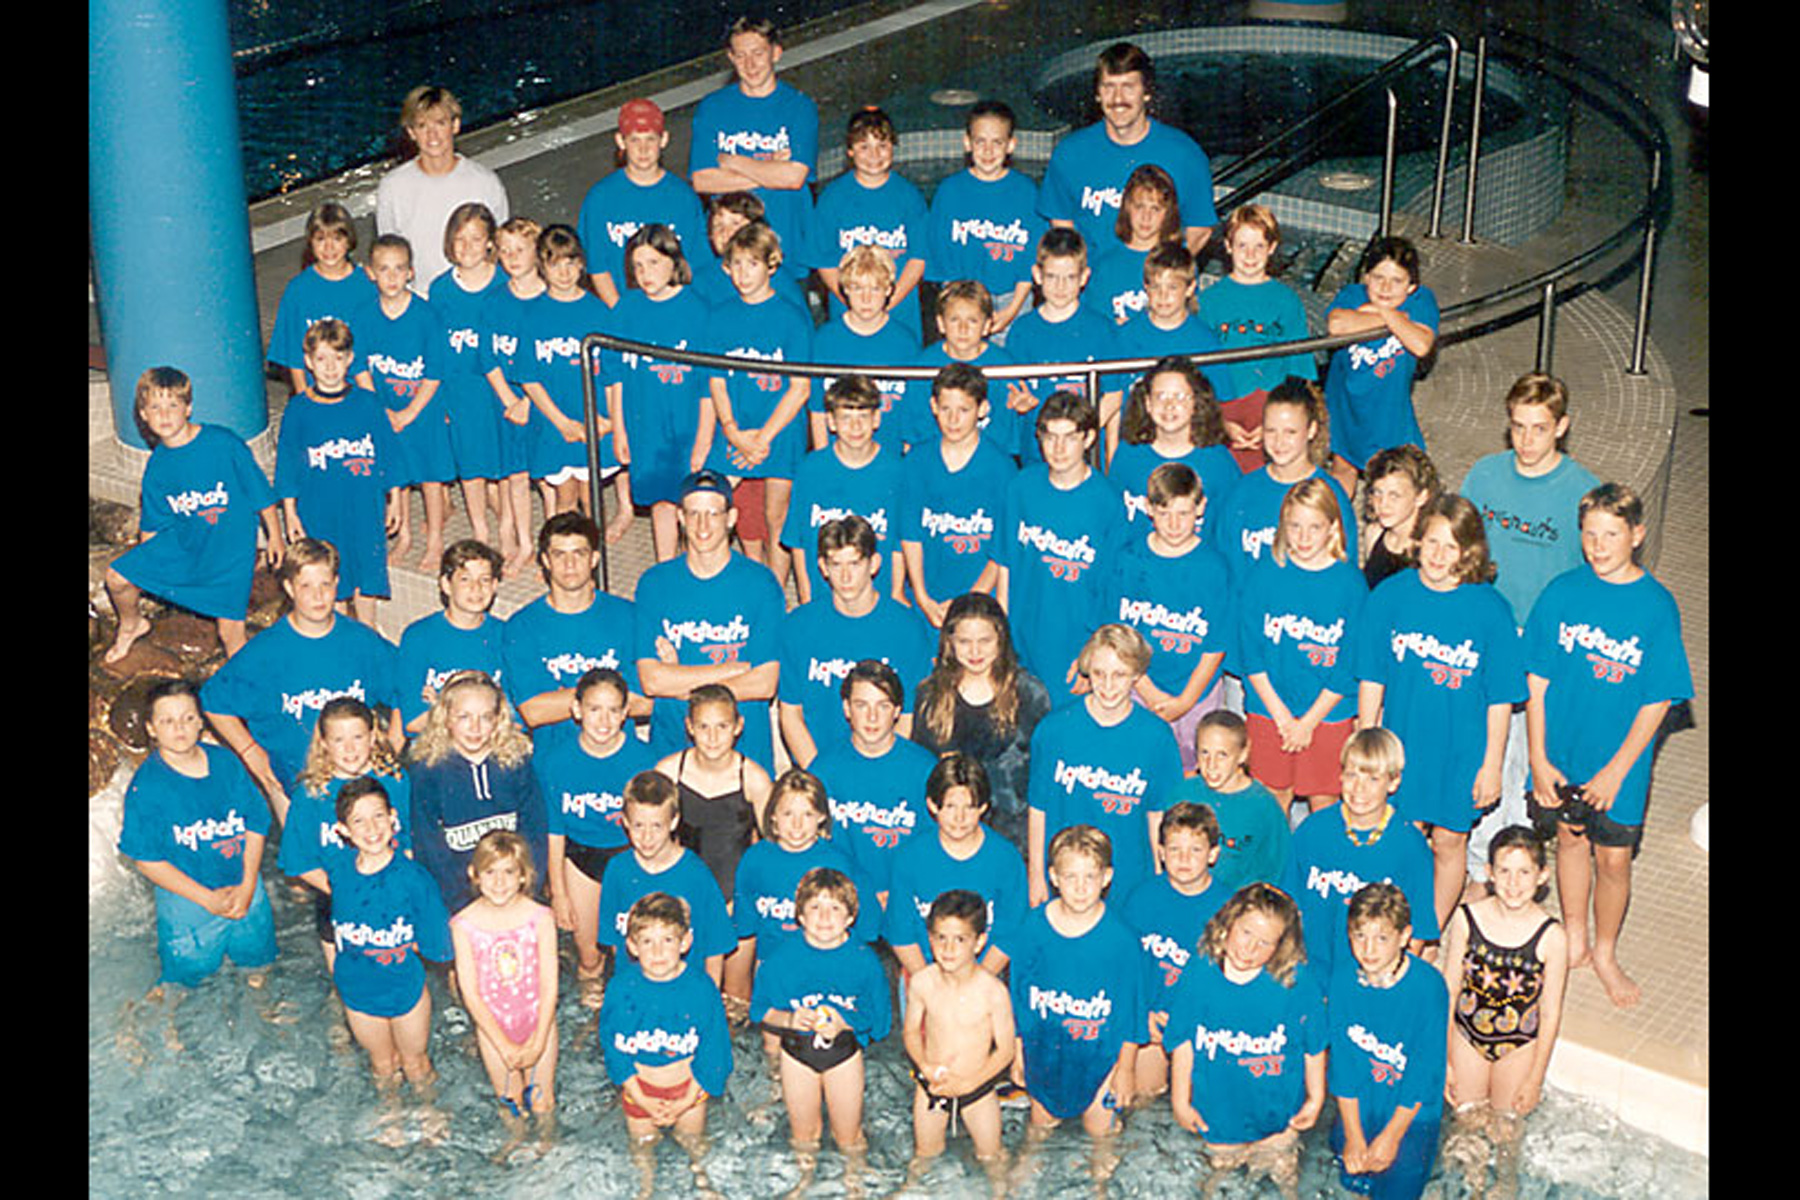 1993 Lloydminster Aquanaut Team Photo